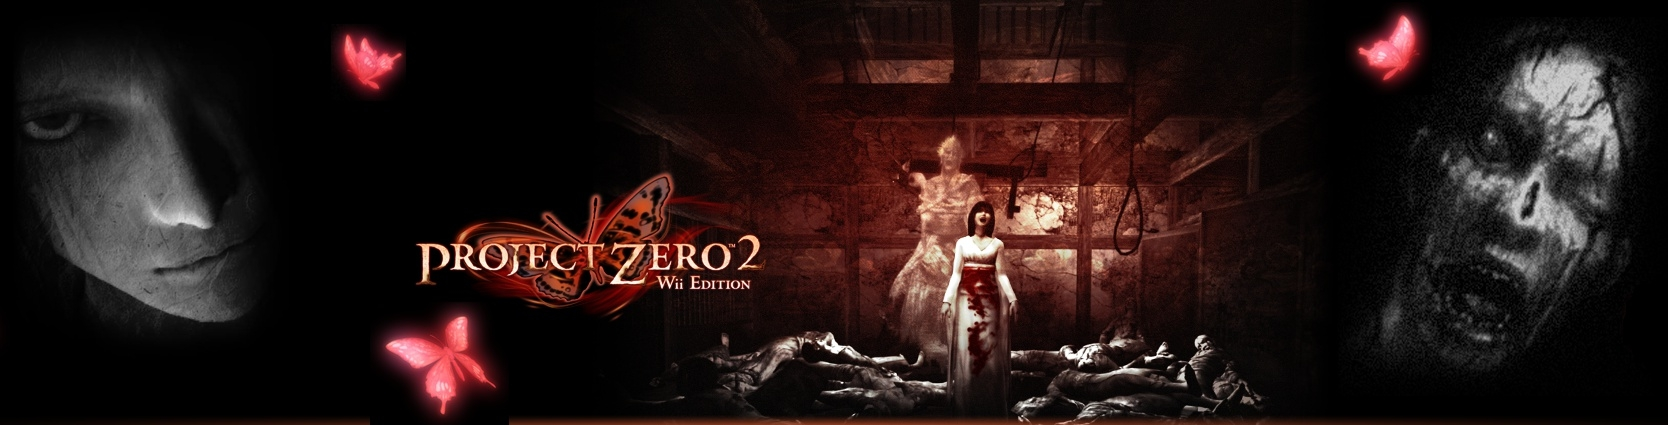 Banner Project Zero 2 Wii Edition